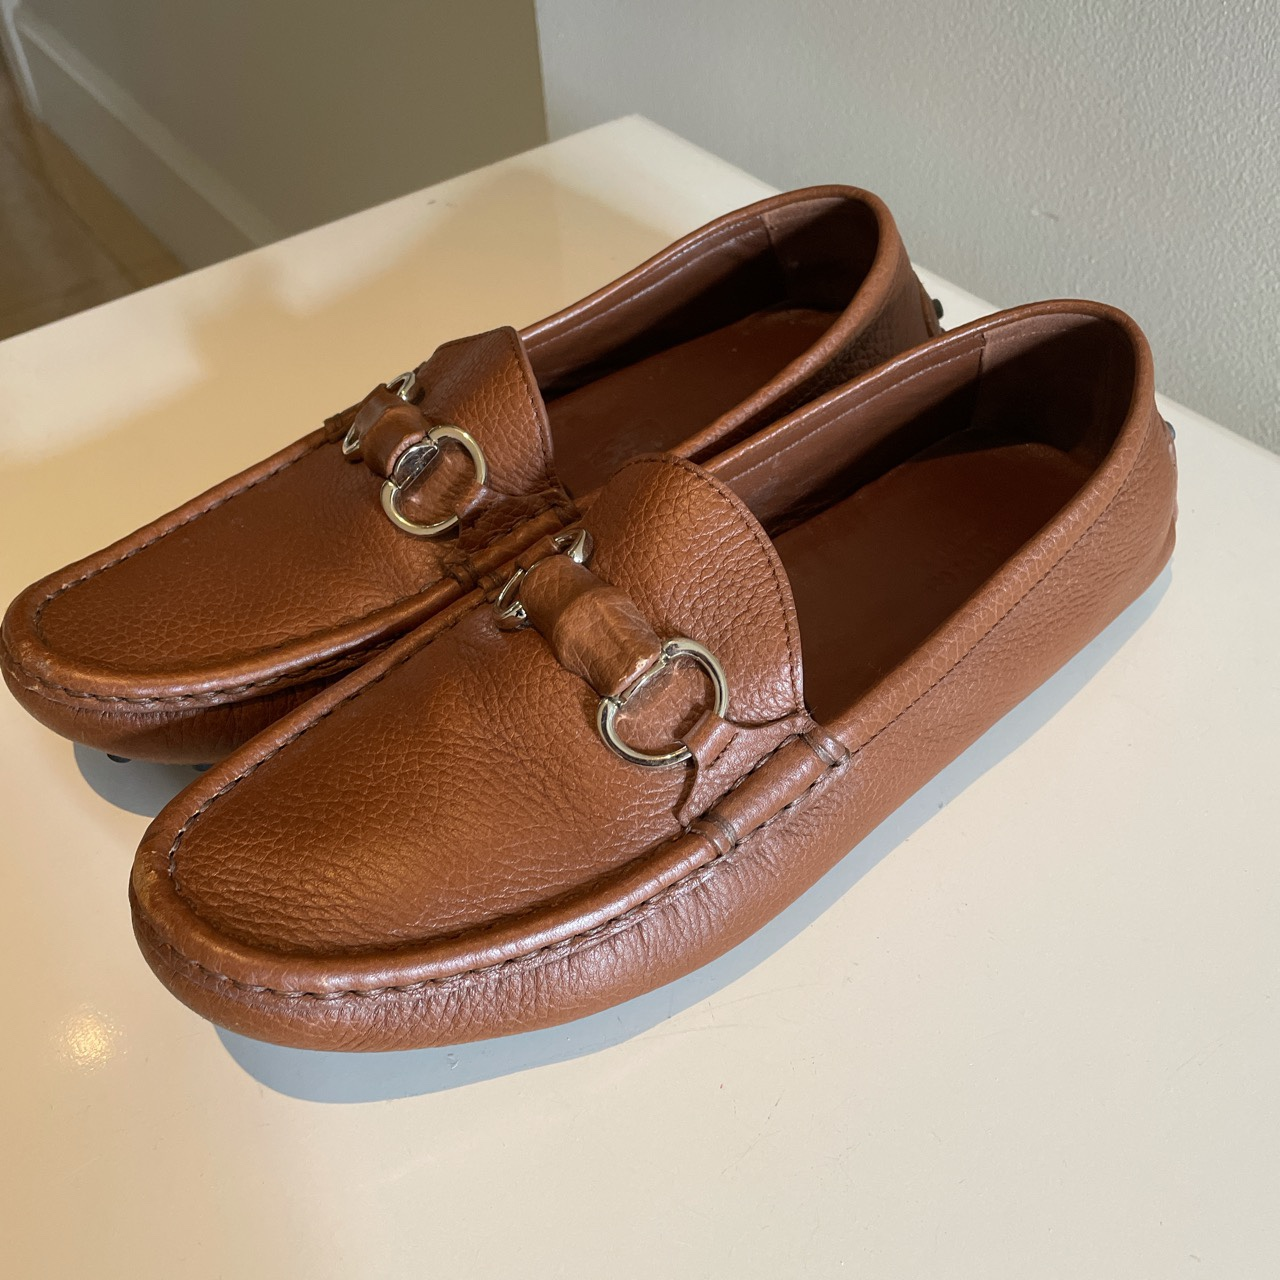 Product Image 1 - Authentic Gucci horsebit loafer! In